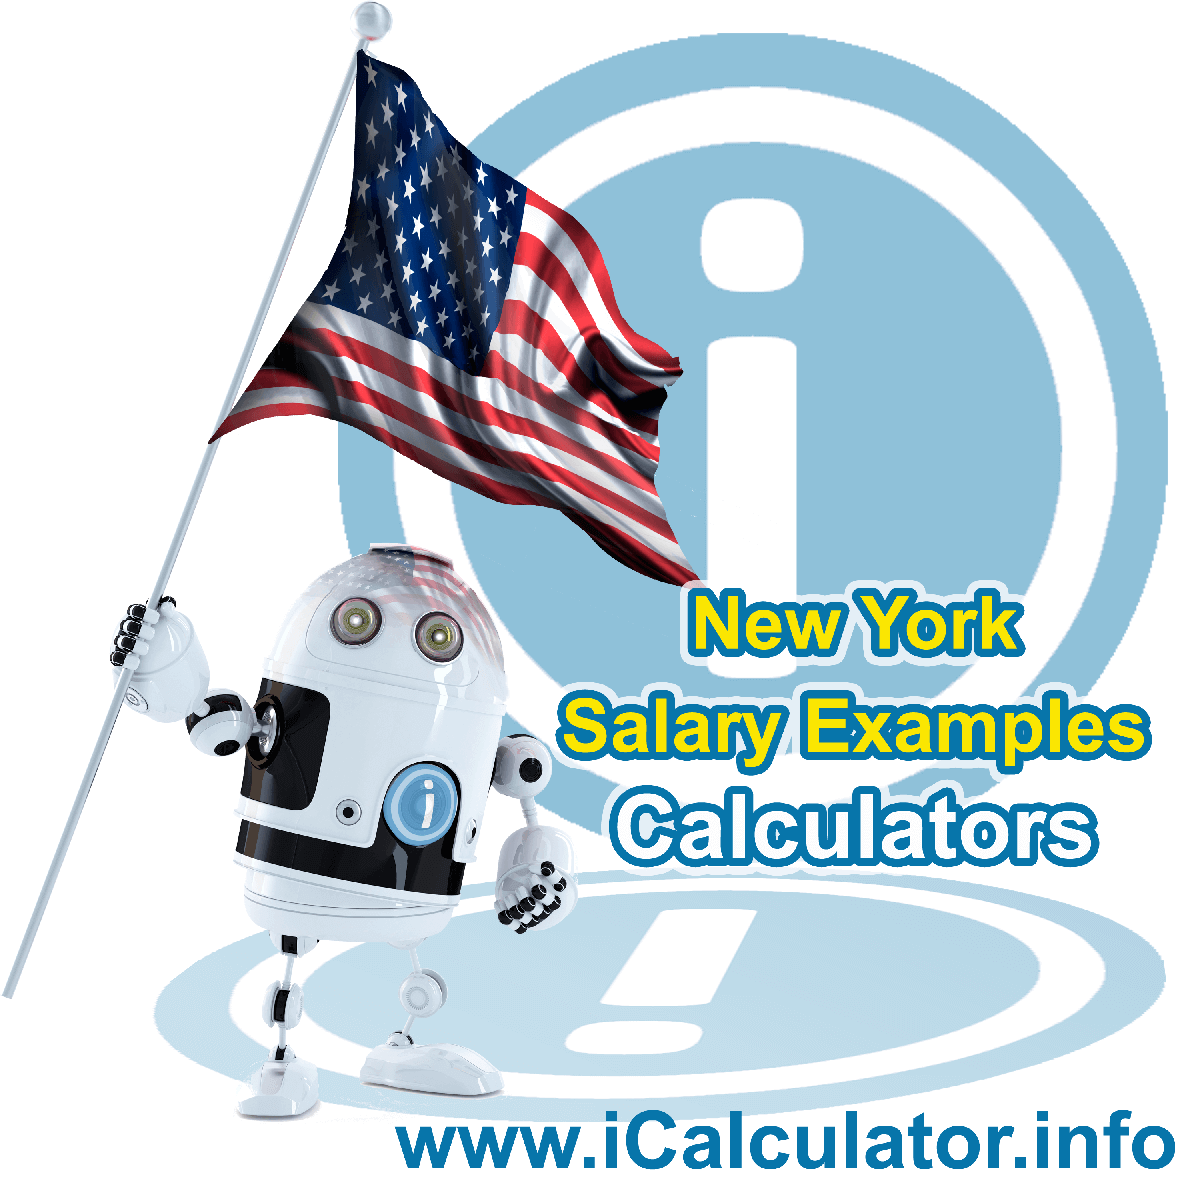 New York Salary Example for $60.00 in 2020 | iCalculator | $60.00 salary example for employee and employer paying New York State tincome taxes. Detailed salary after tax calculation including New York State Tax, Federal State Tax, Medicare Deductions, Social Security, Capital Gains and other income tax and salary deductions complete with supporting New York state tax tables